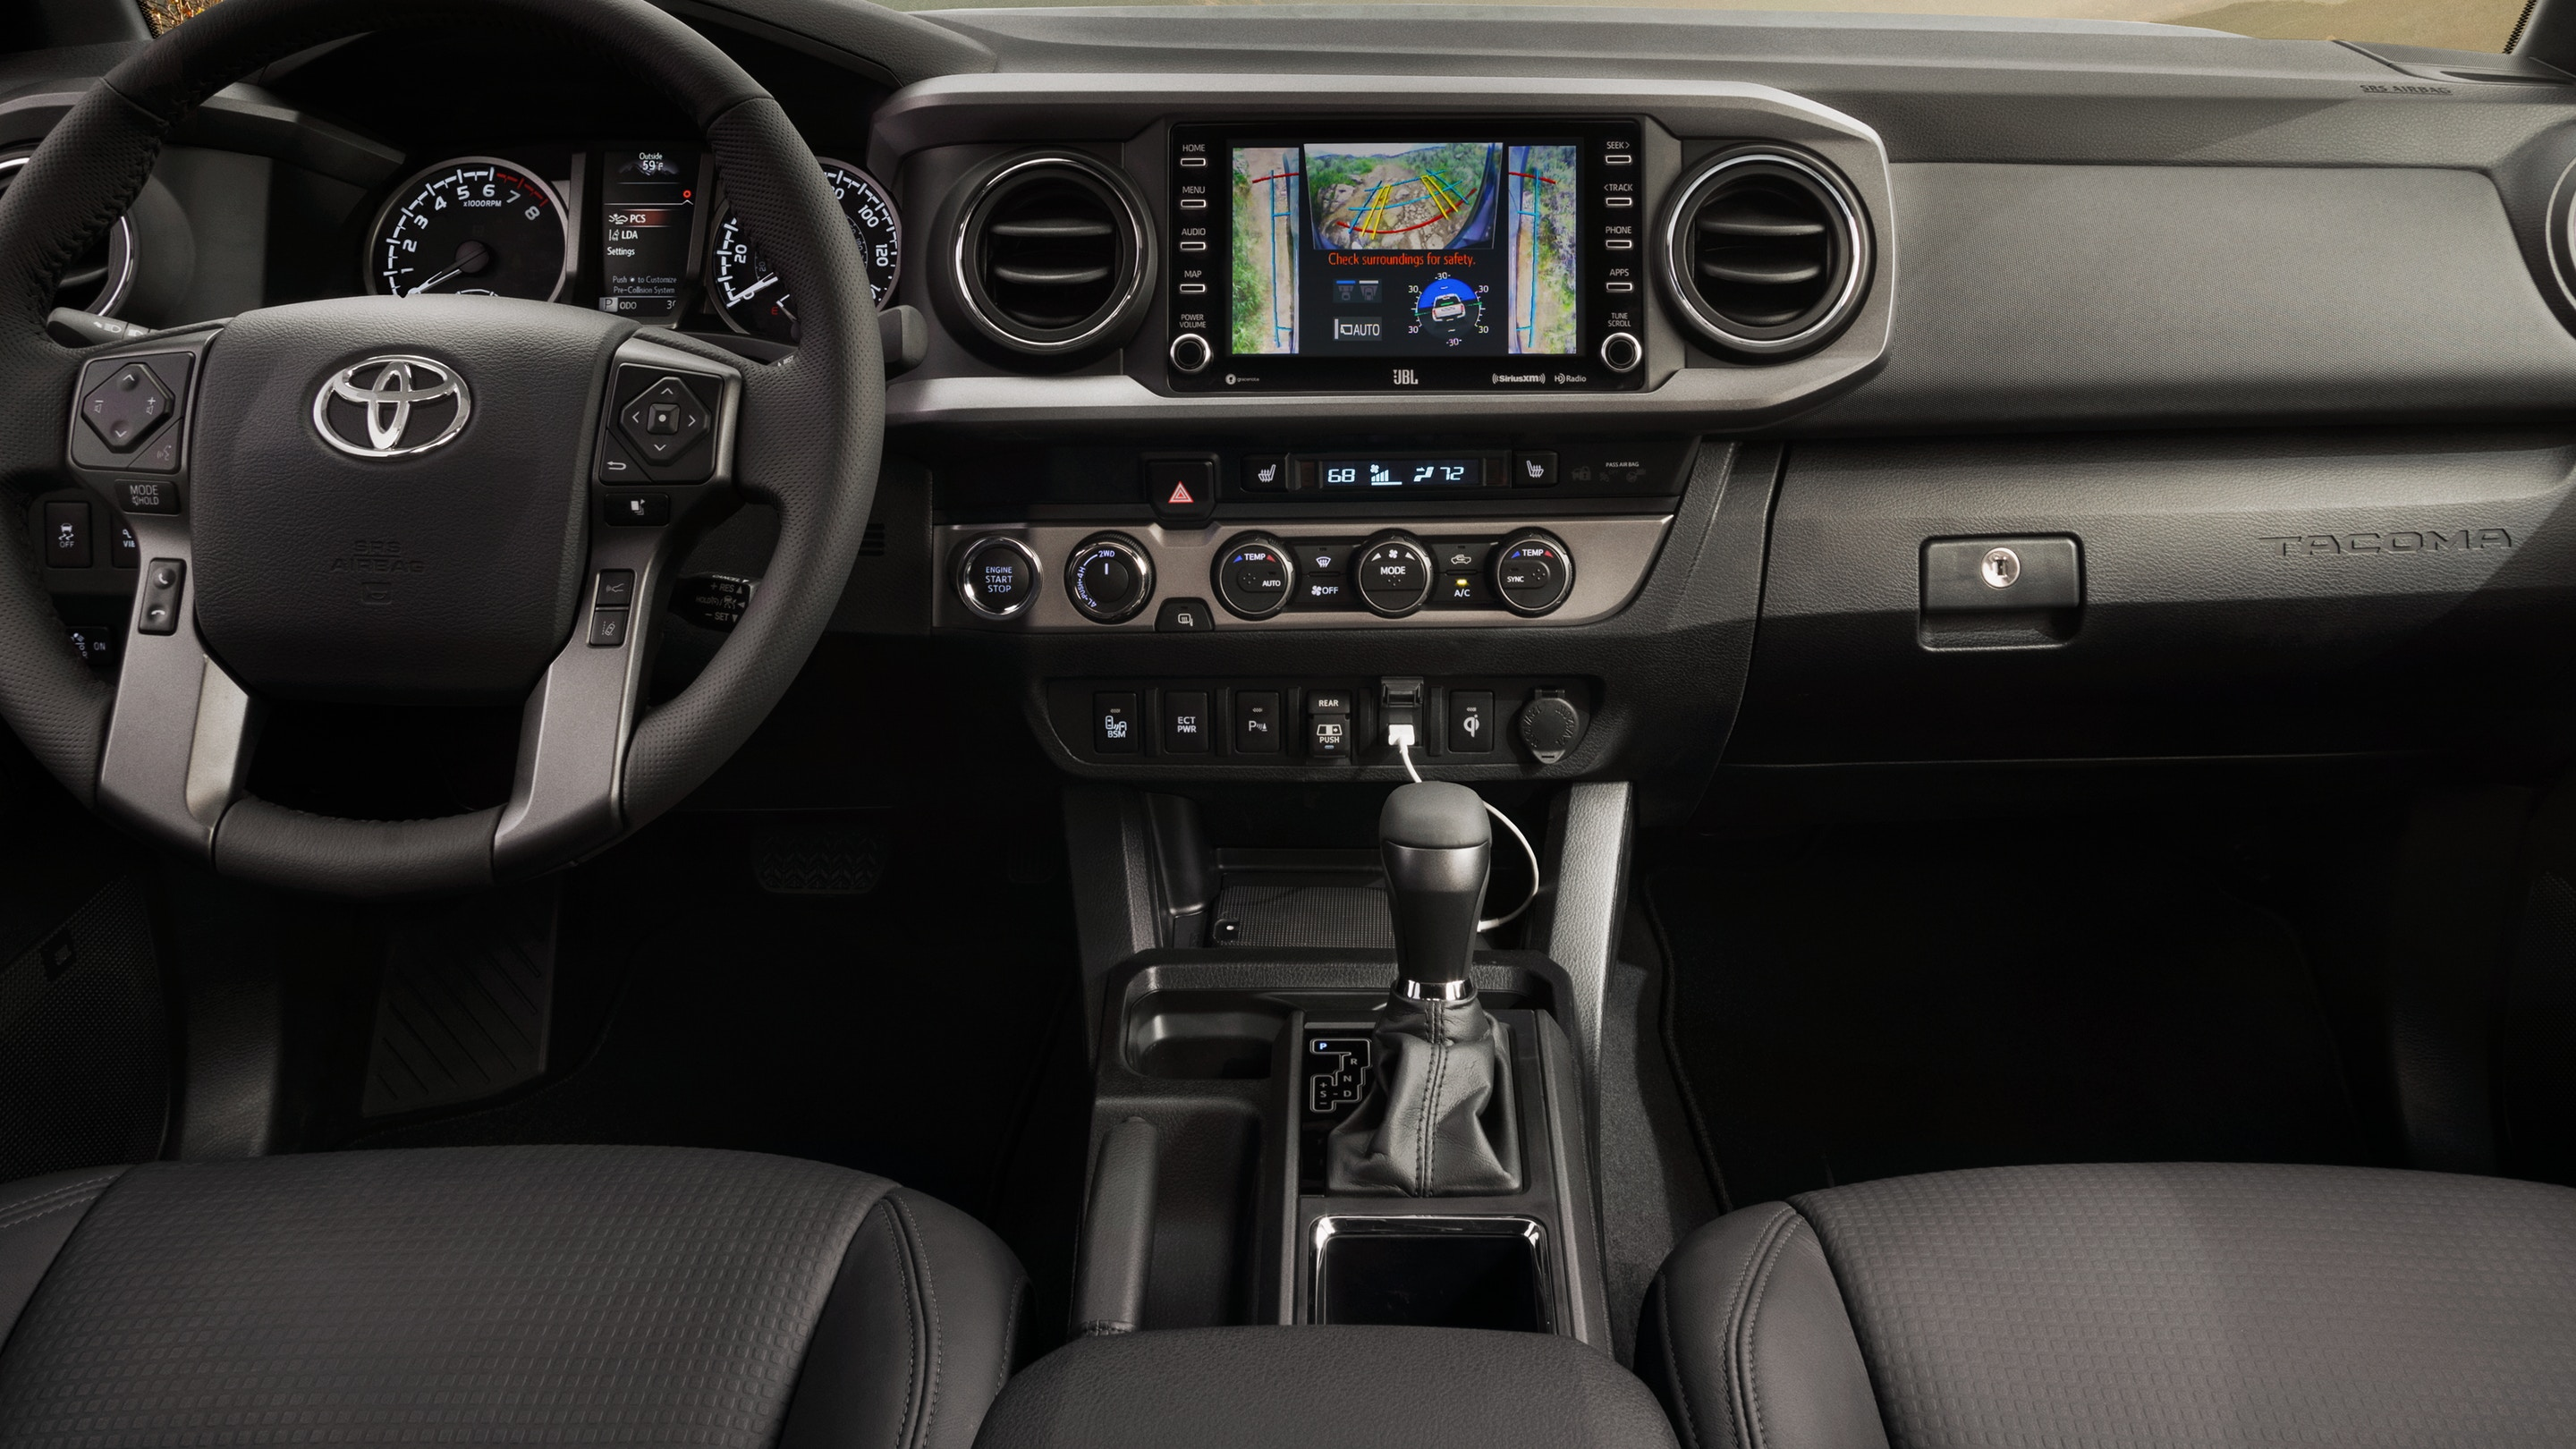 Interior of the 2020 Tacoma